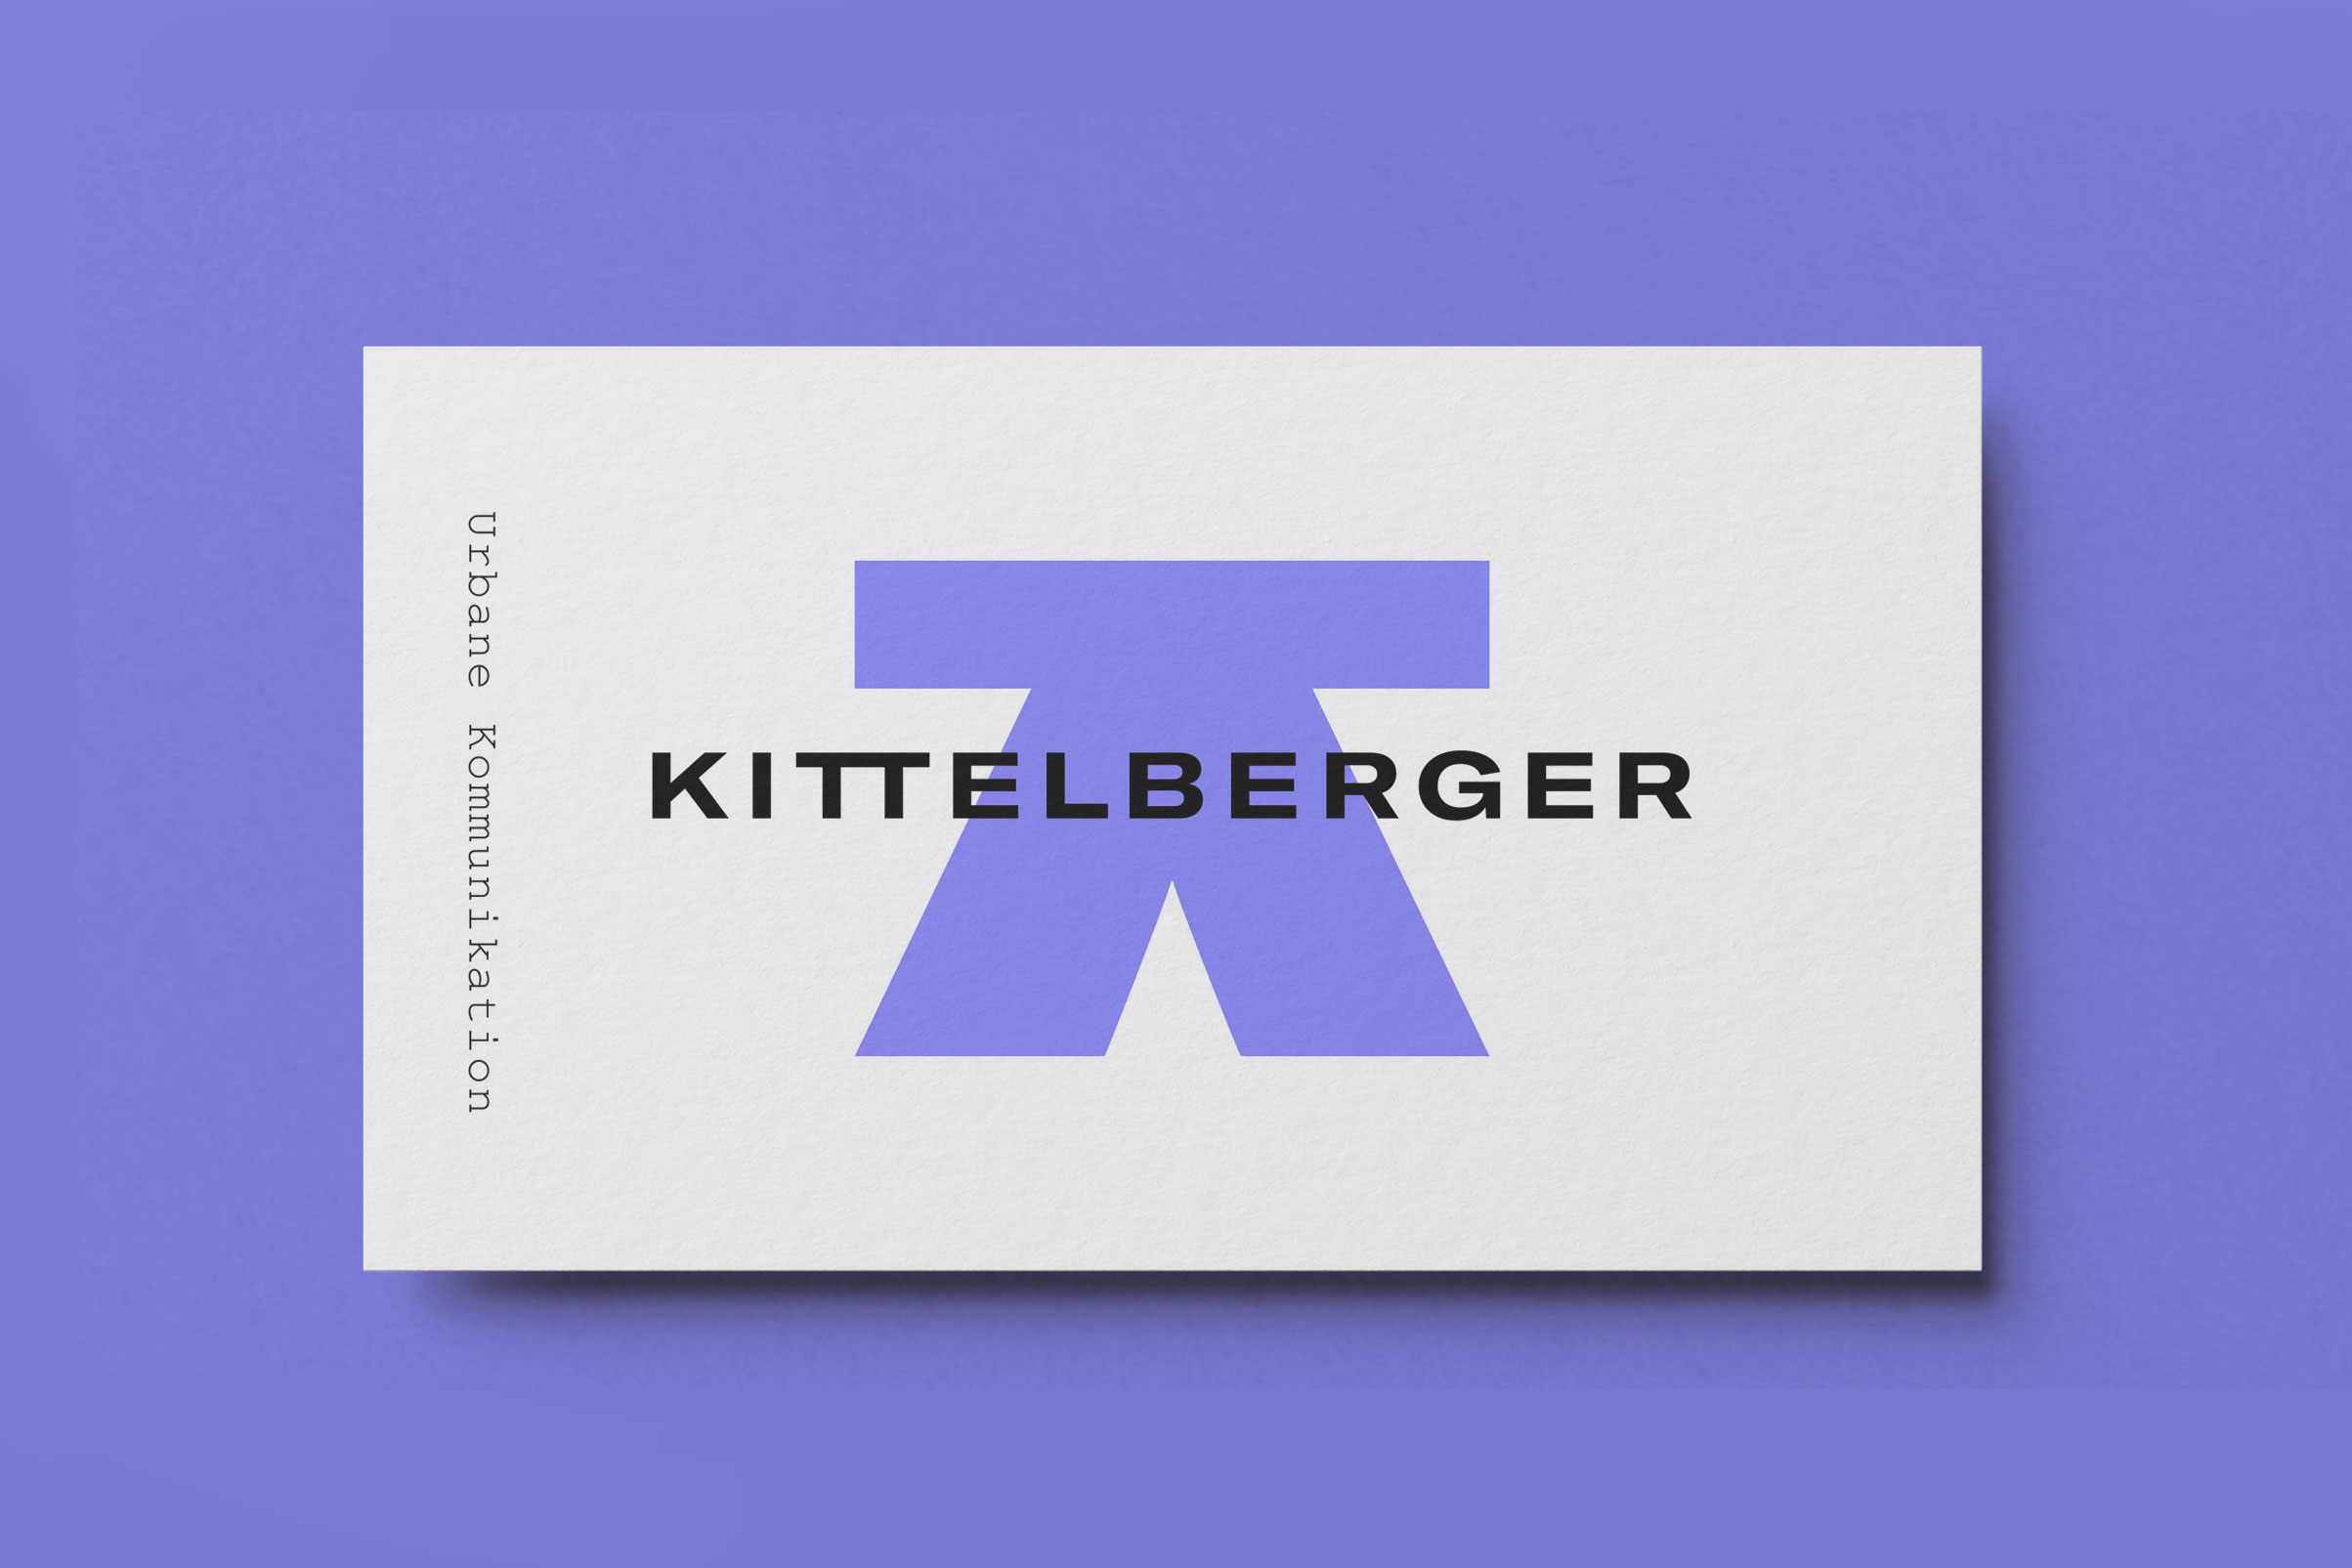 Kittelberger